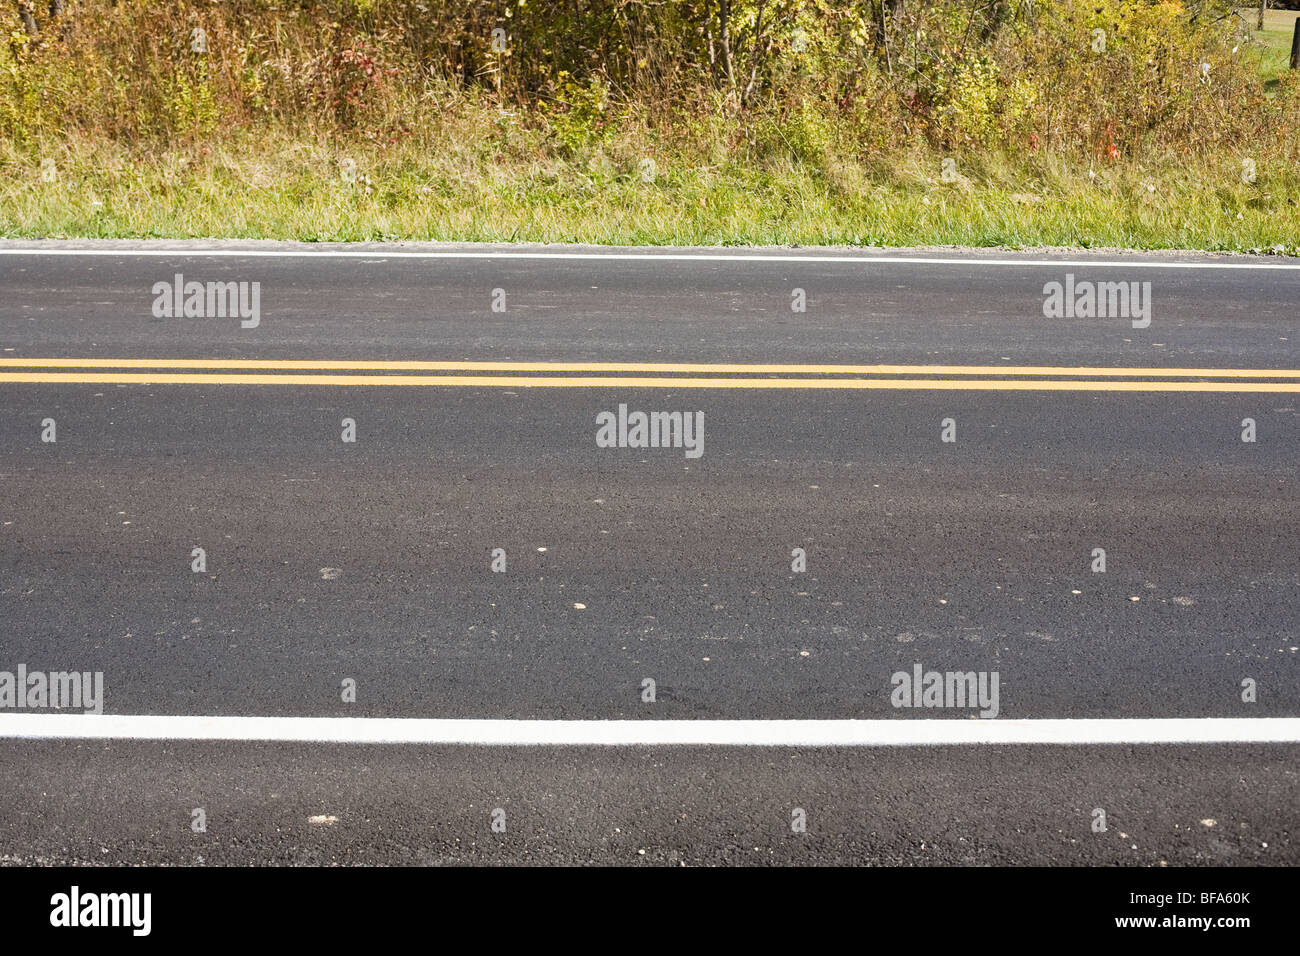 A two lane road - Stock Image